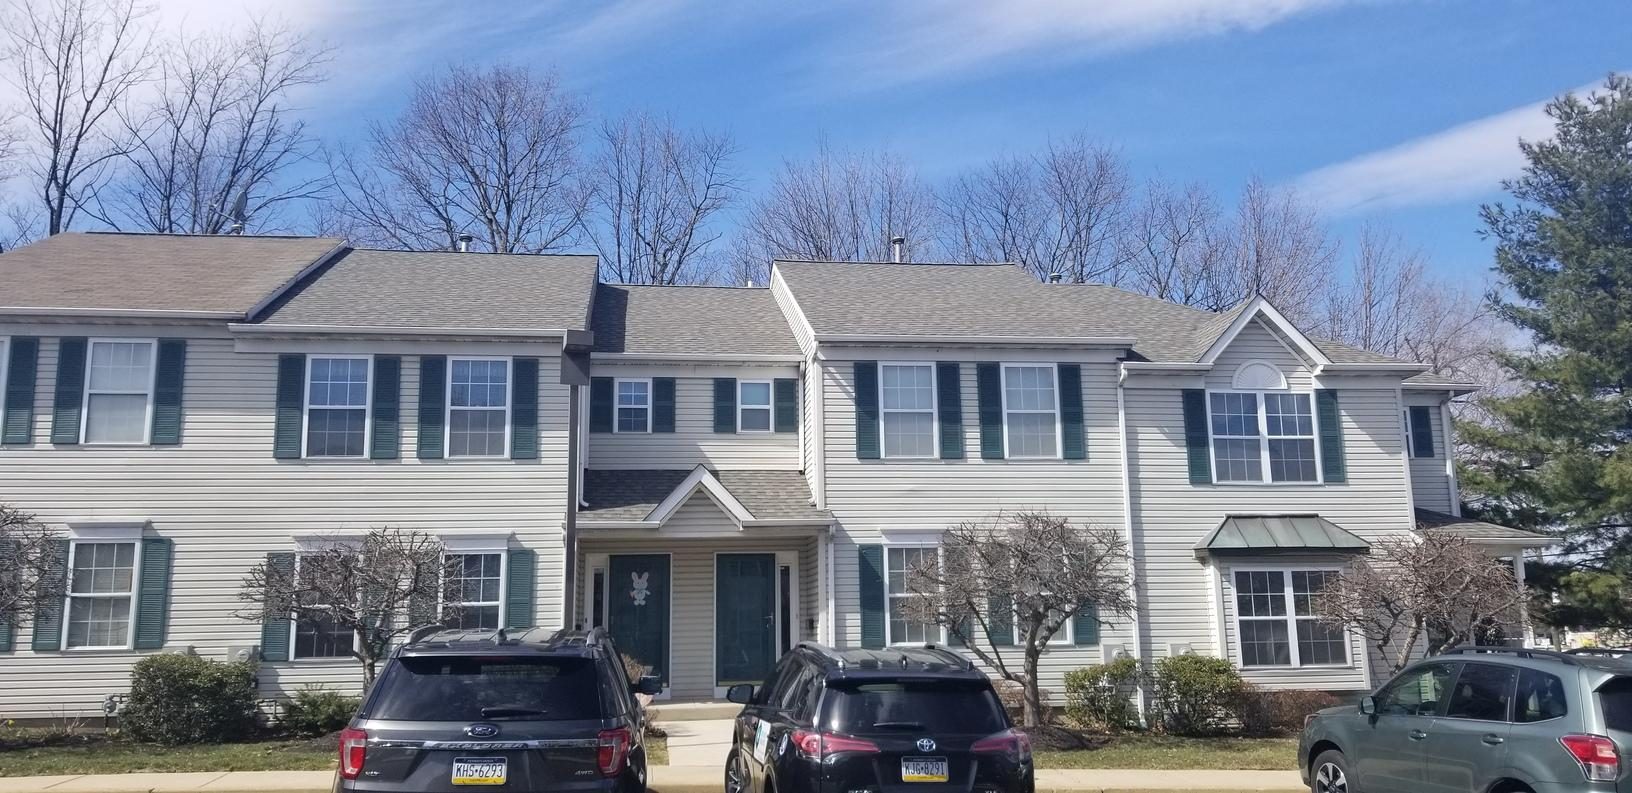 New Roof Installation in Hatboro, PA - After Photo